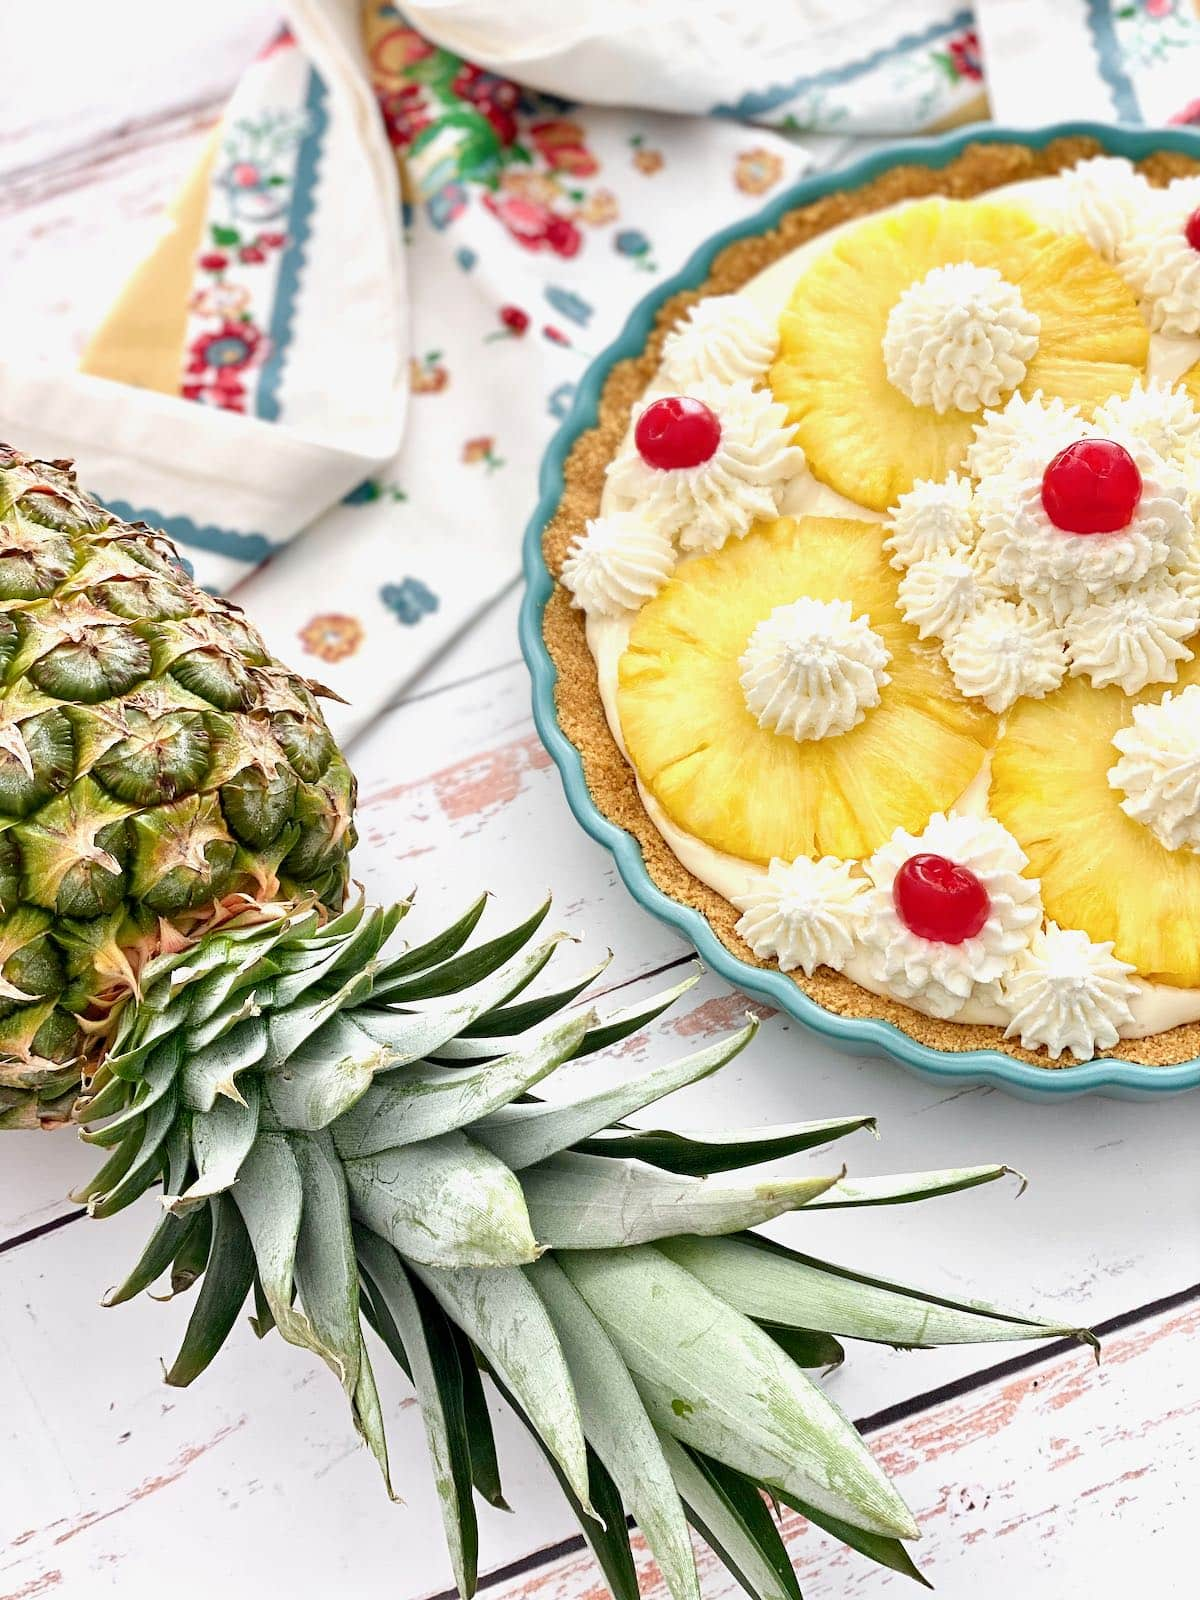 a fresh pineapple laying beside a whole pineapple pie.